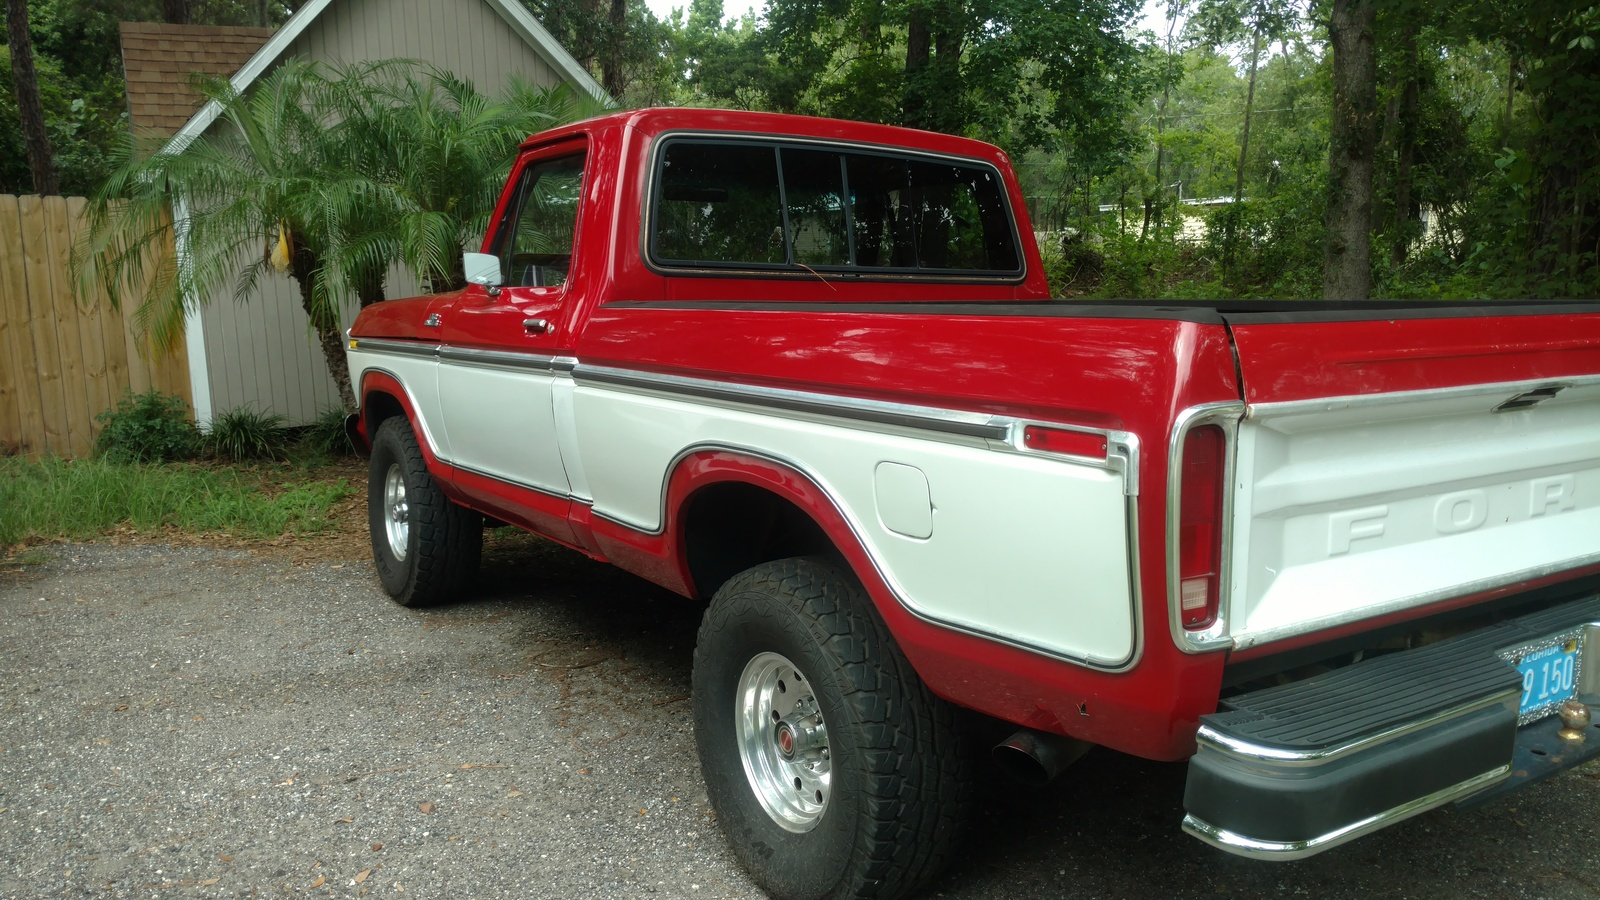 1978 Ford F-150 - Overview